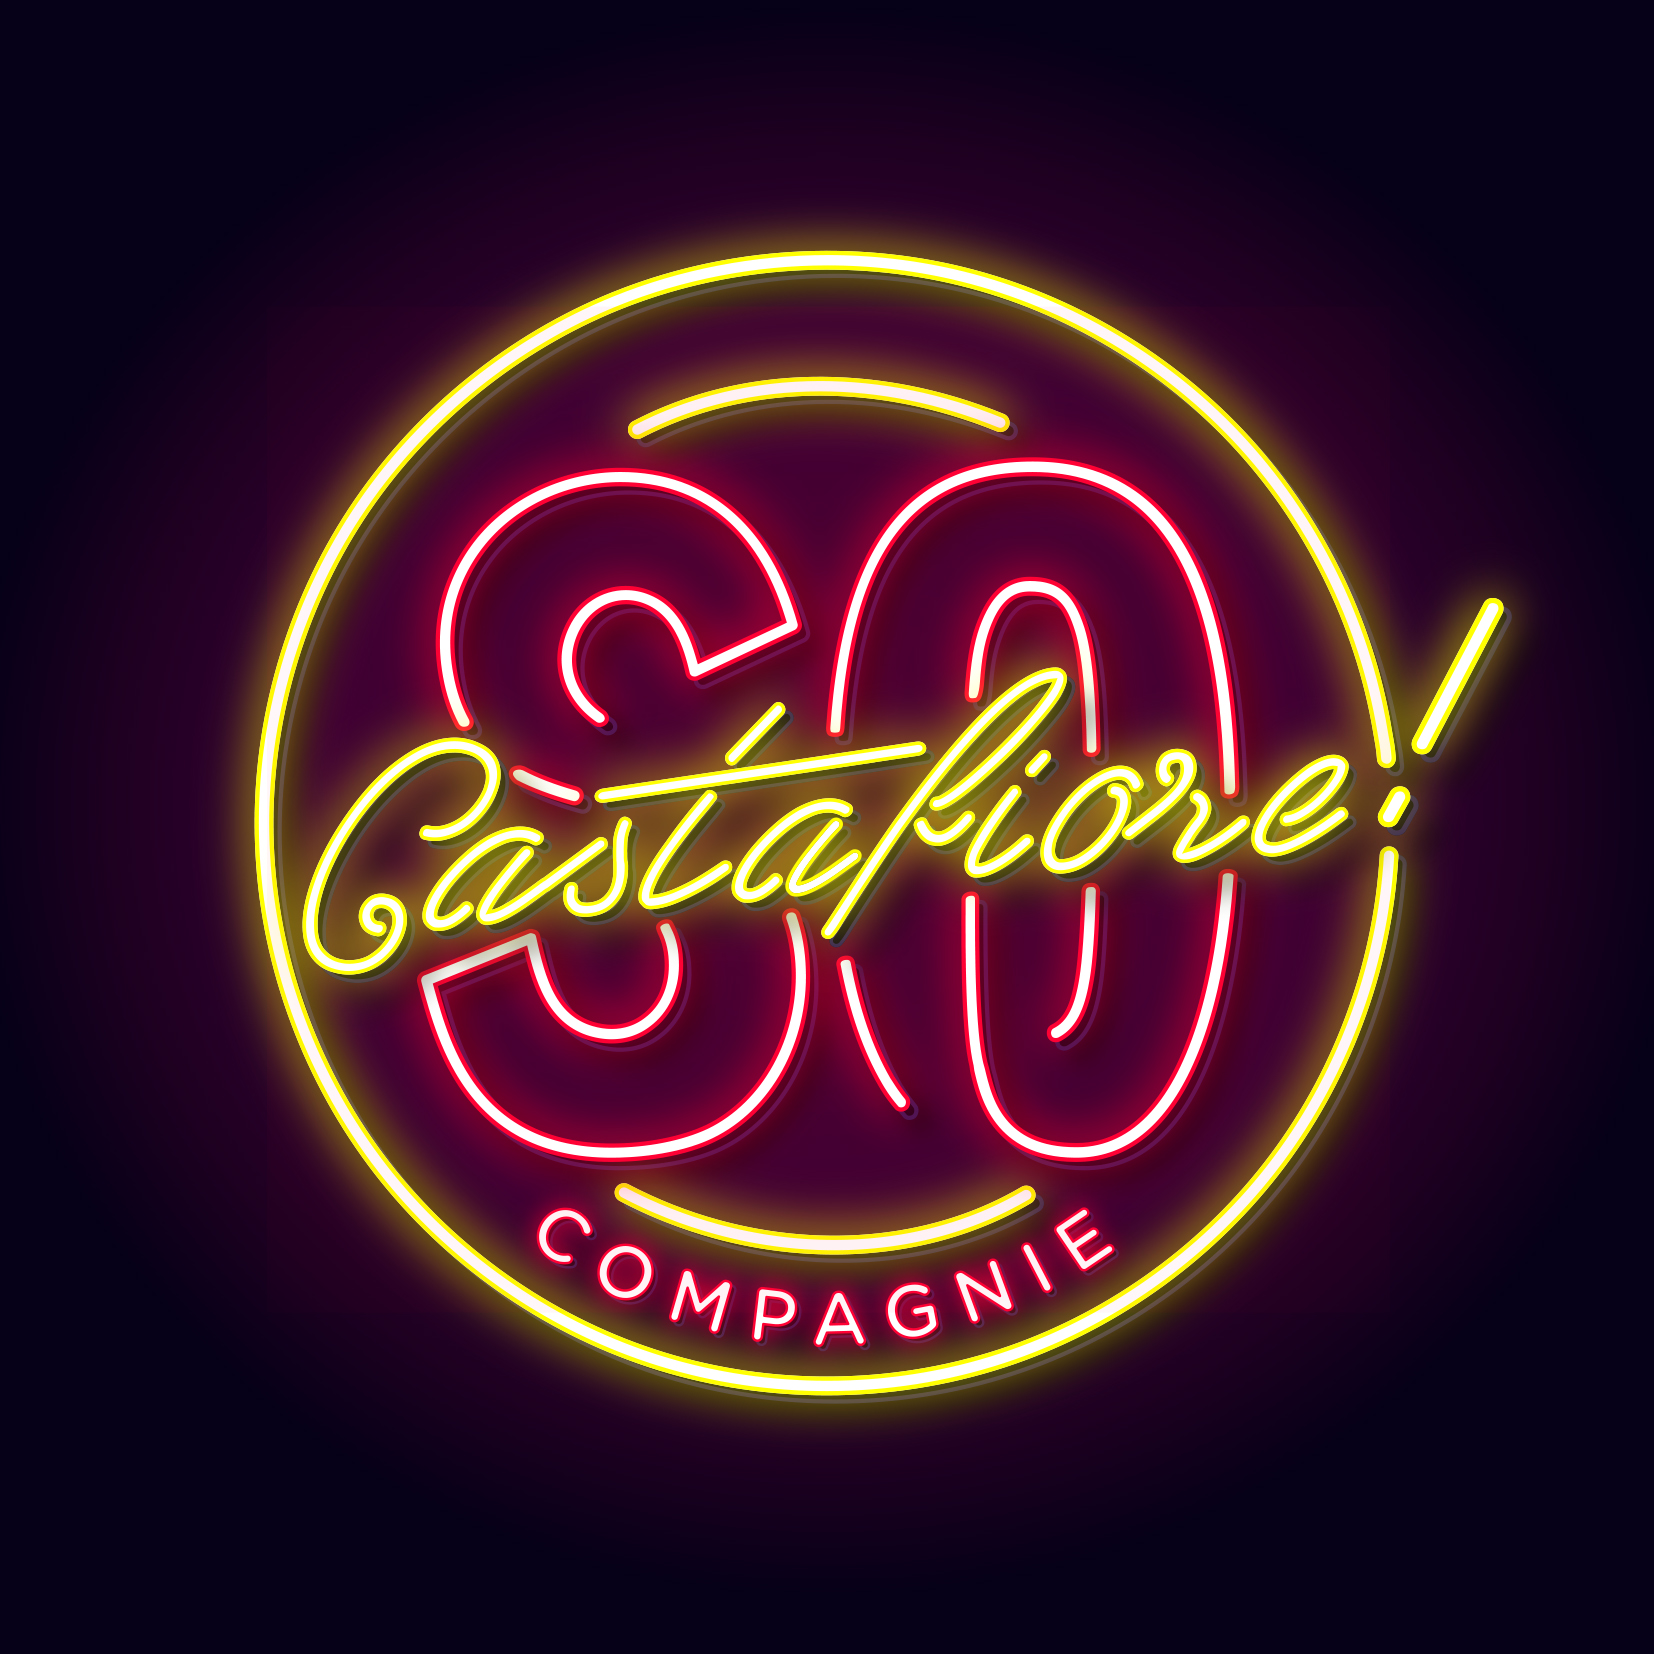 Association - compagnie so castafiore